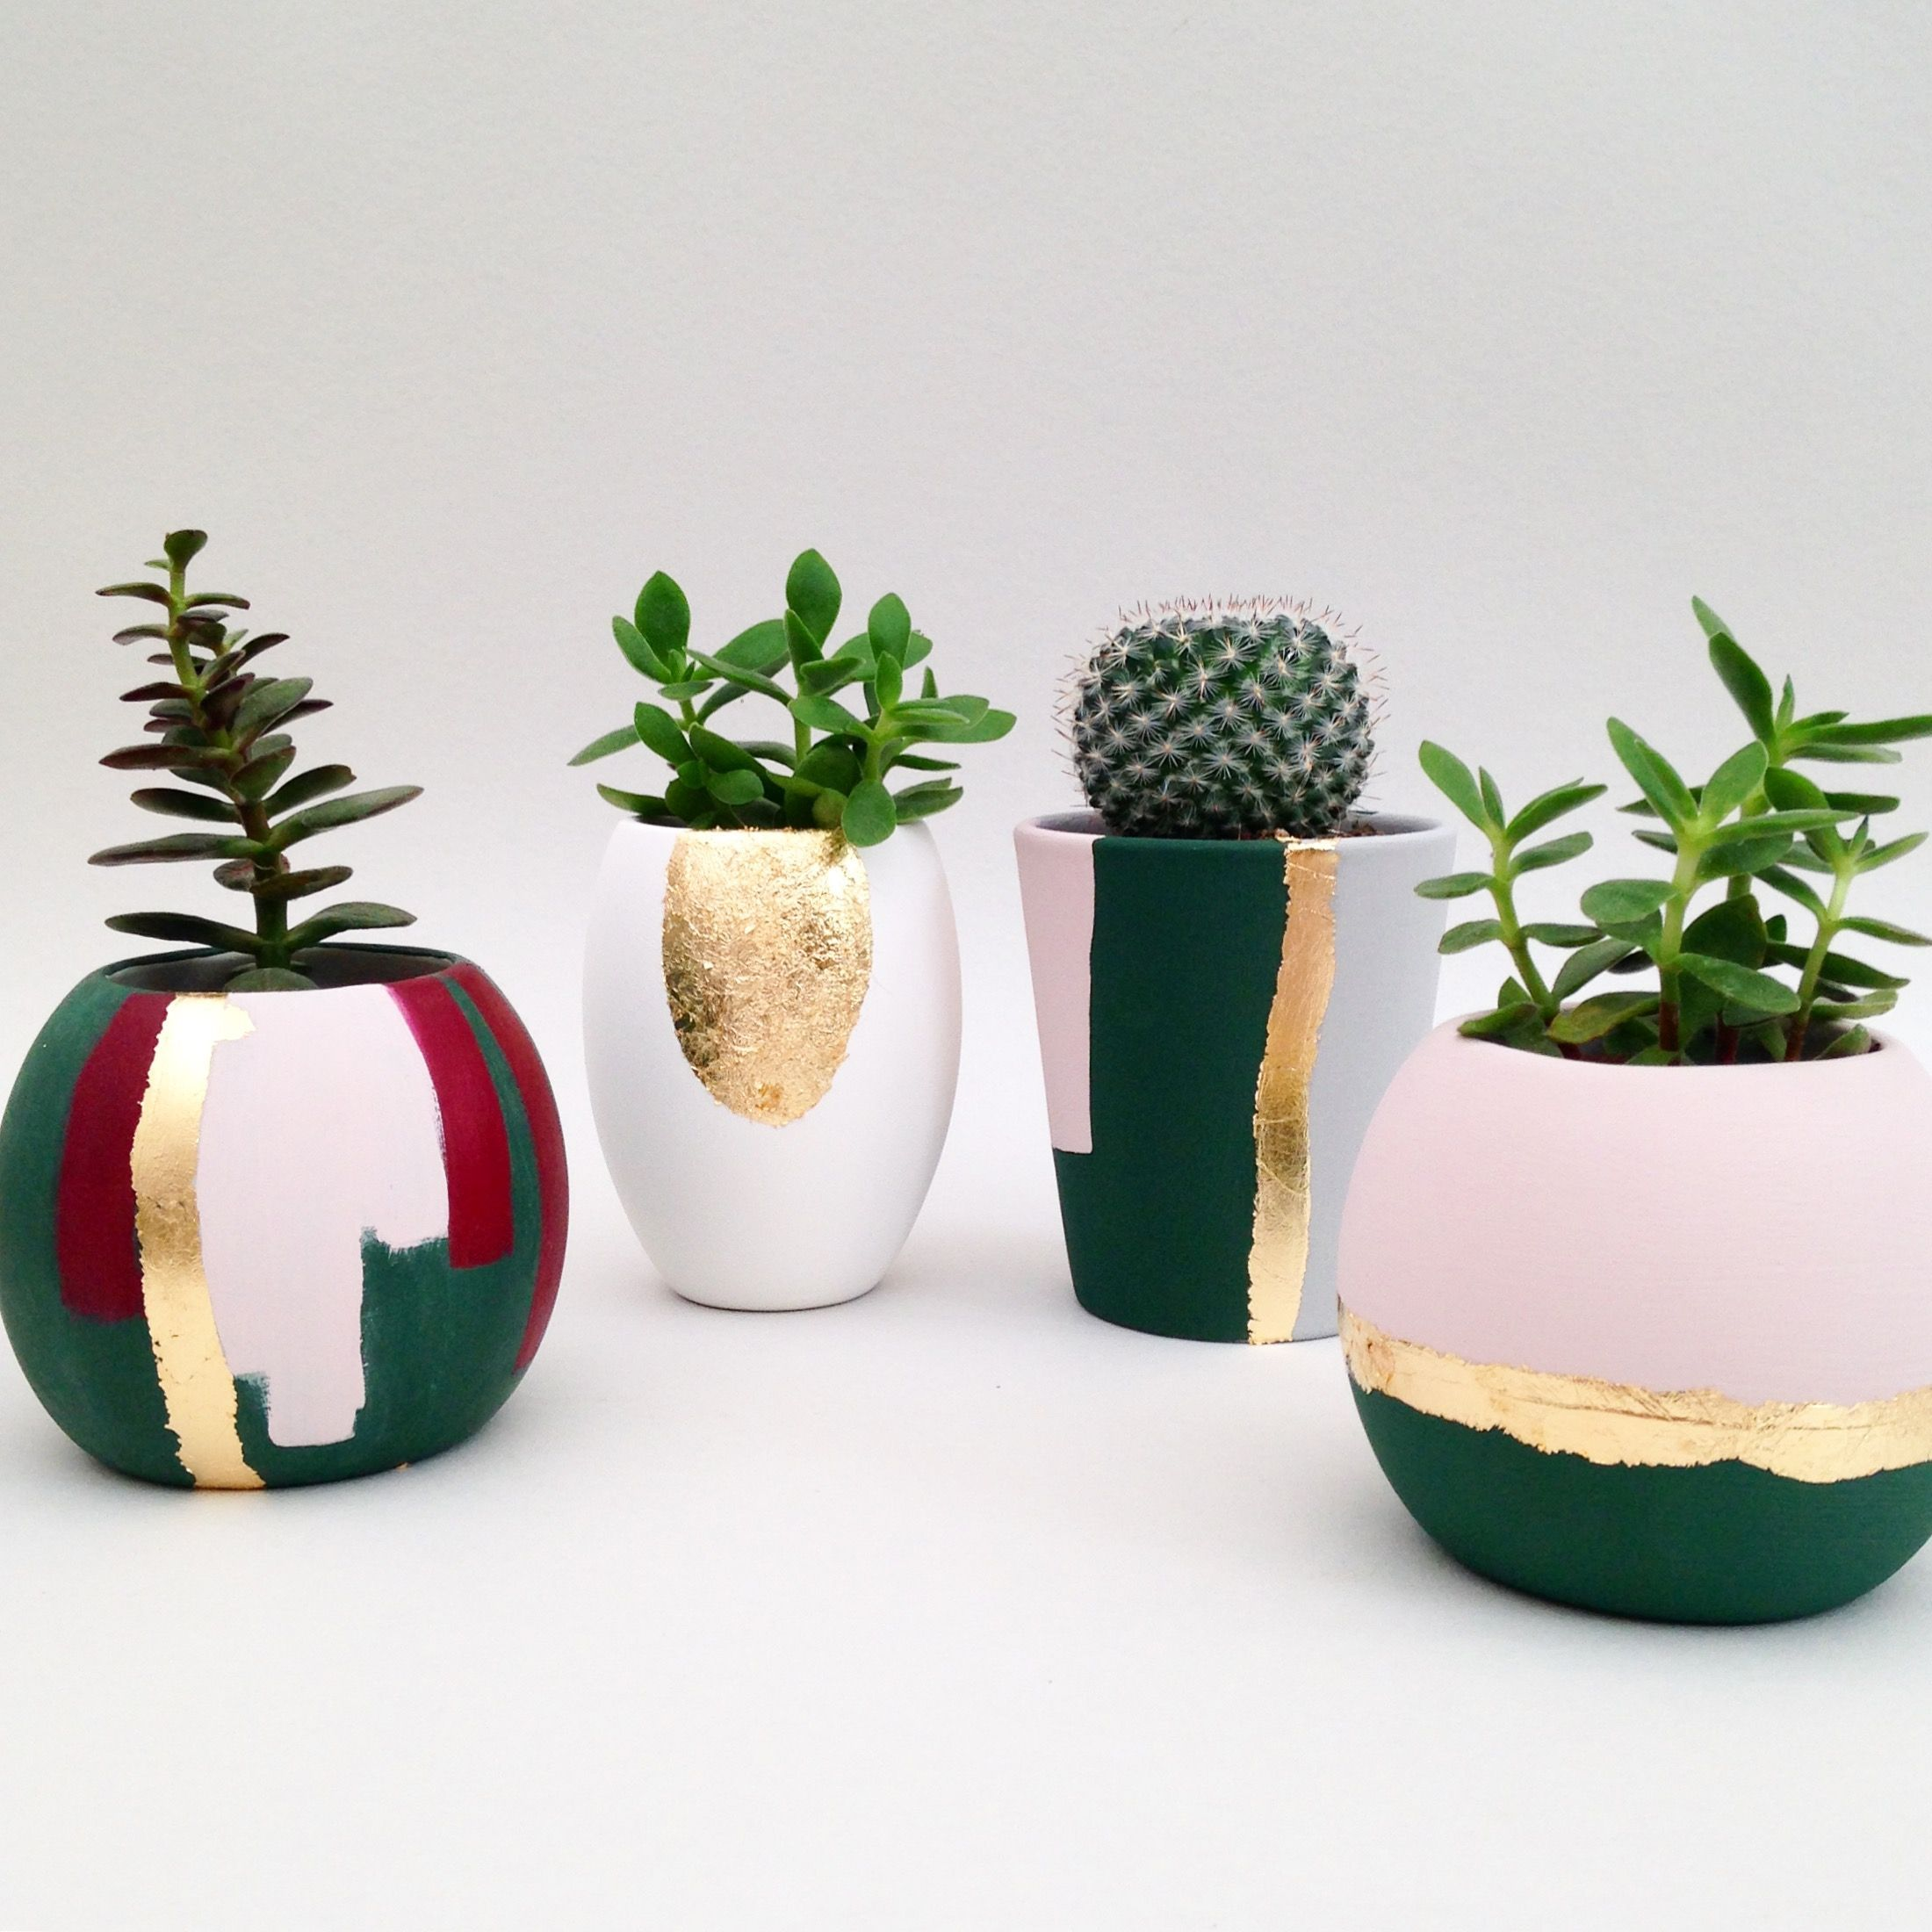 Our Hand Painted Ceramic Planters Have An Extremely Matt Velvety Finish Complemented With Hints Of G Plant Pot Diy Painted Plant Pots Painted Ceramic Planter